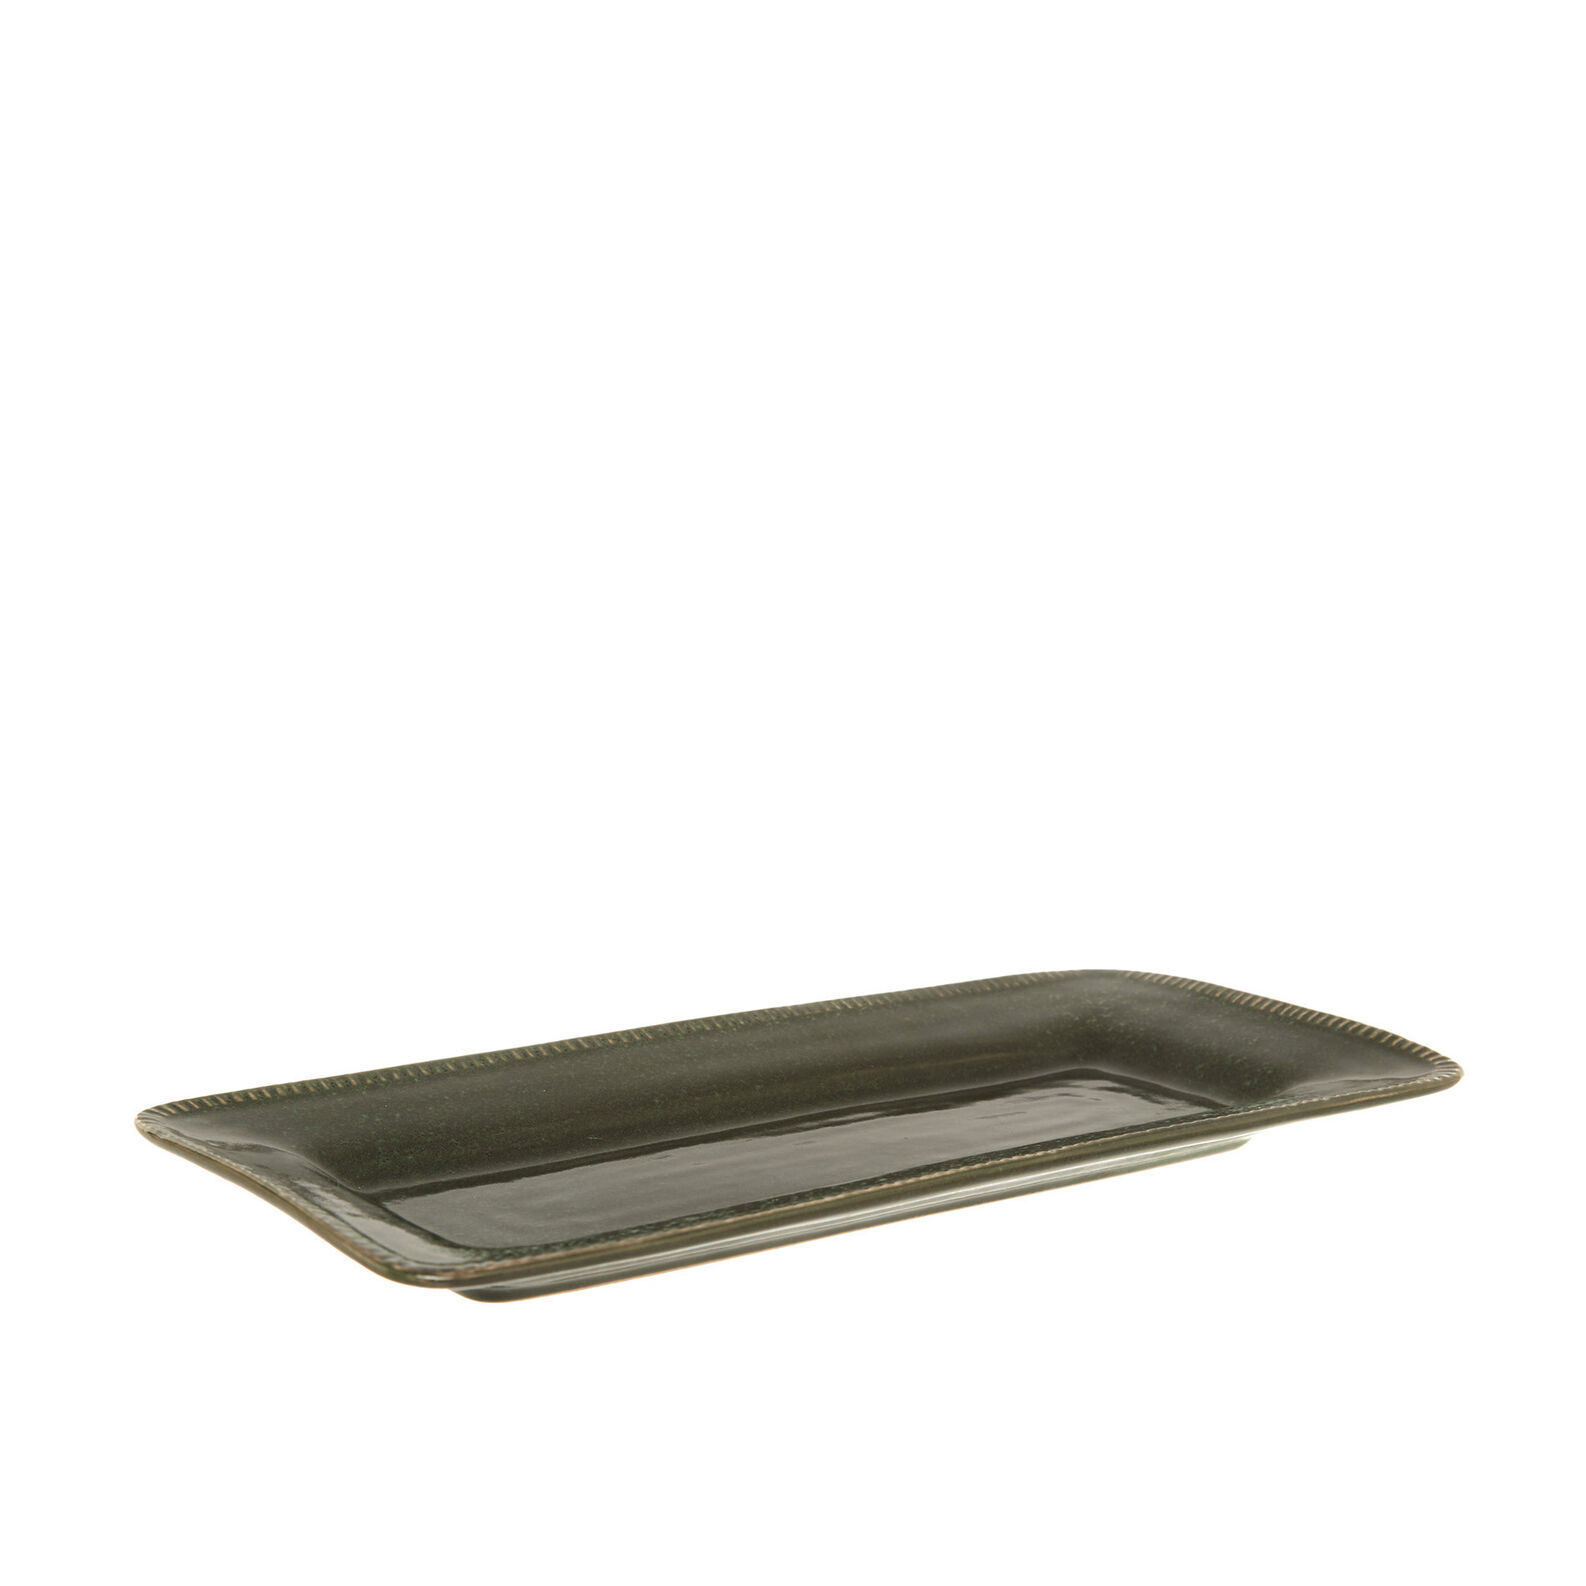 Stoneware side plate with distressed effect